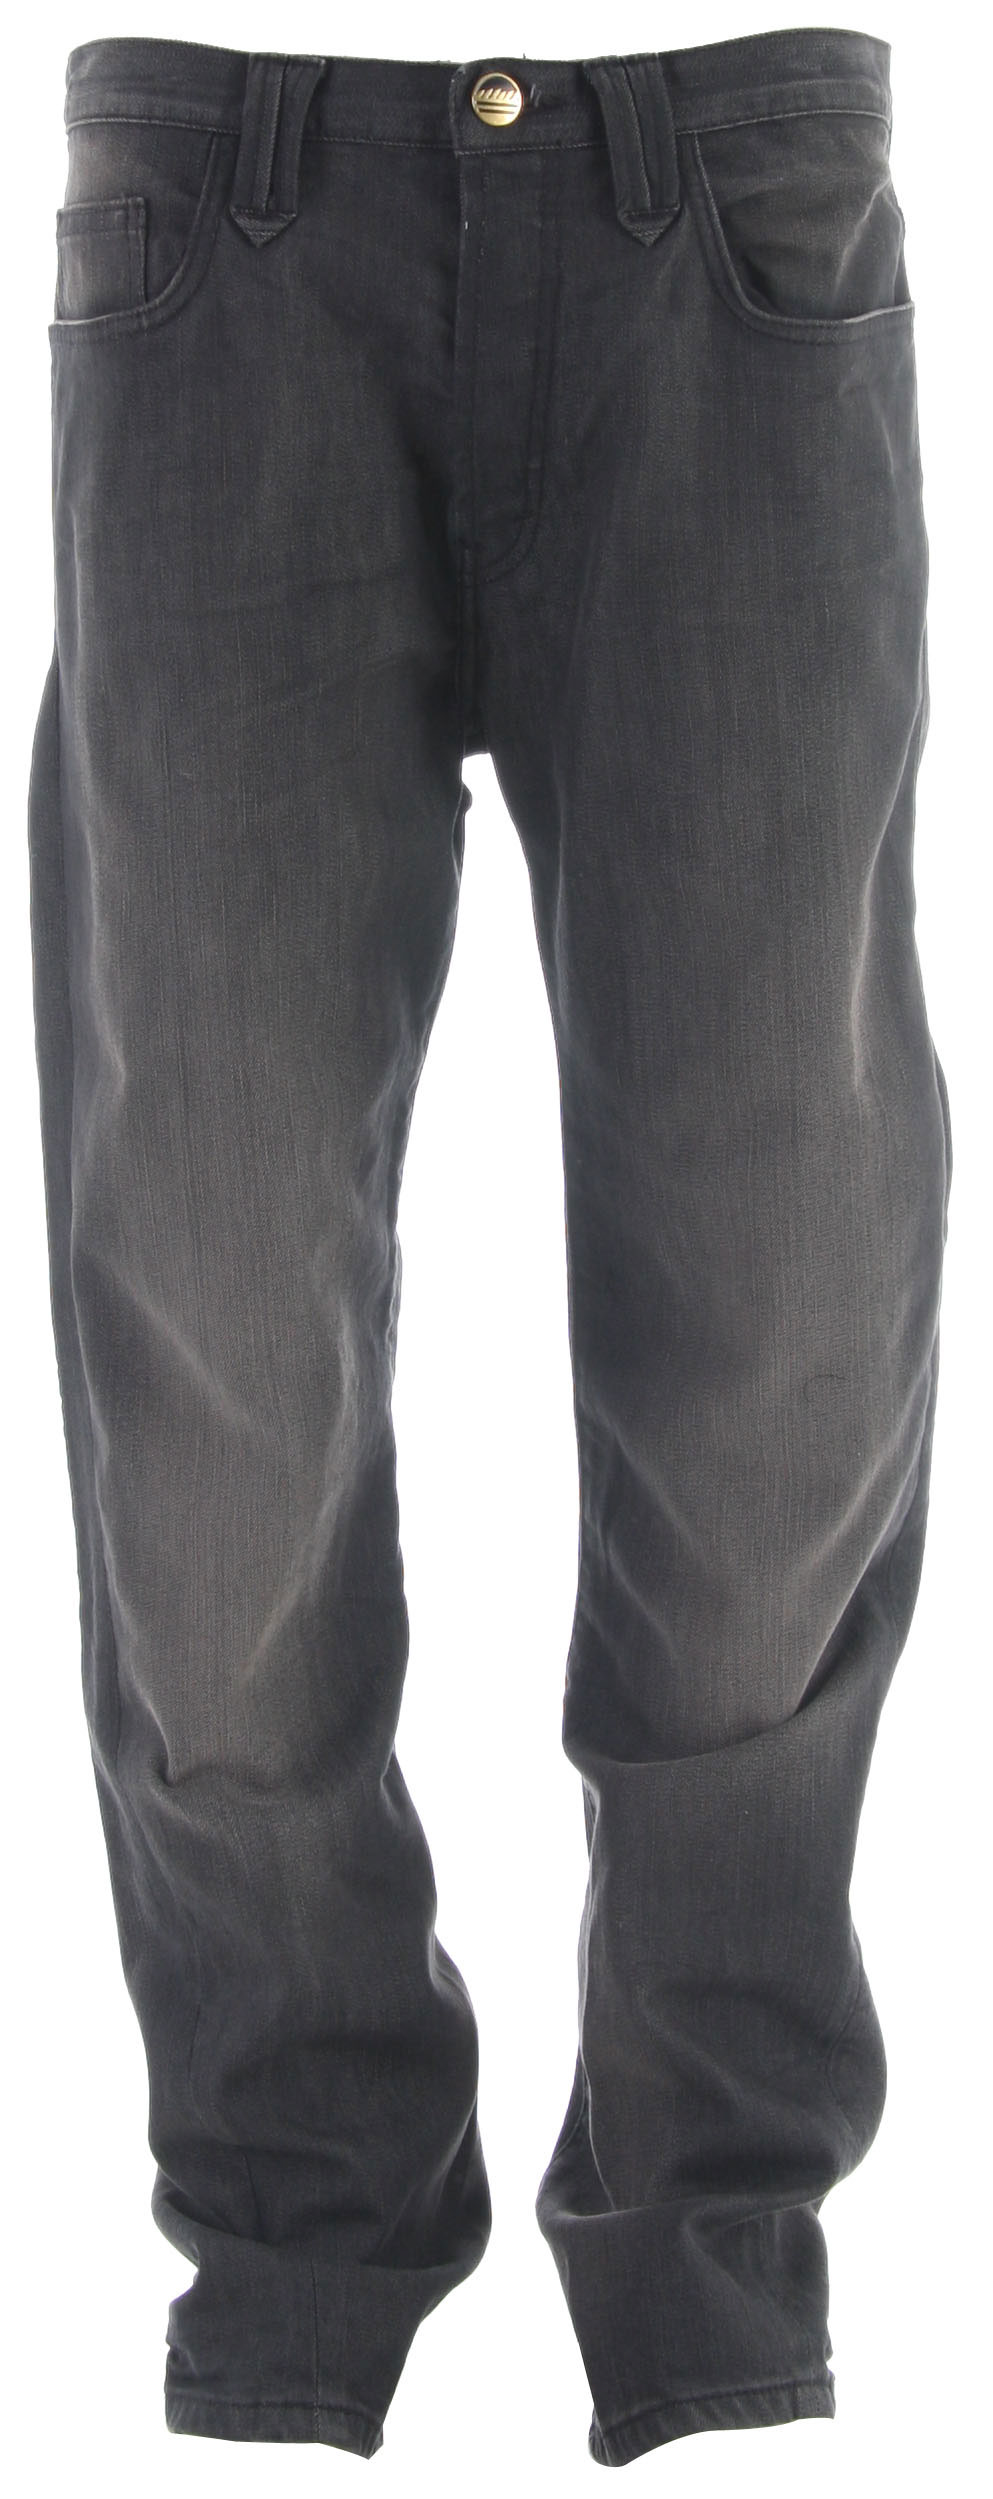 "Key Features of the Analog Arto Blue Grey Jeans: Regular Fit with standard rise and tapered leg Twisted leg seams articulate shape and fit of lower leg16"" leg opening - $50.95"